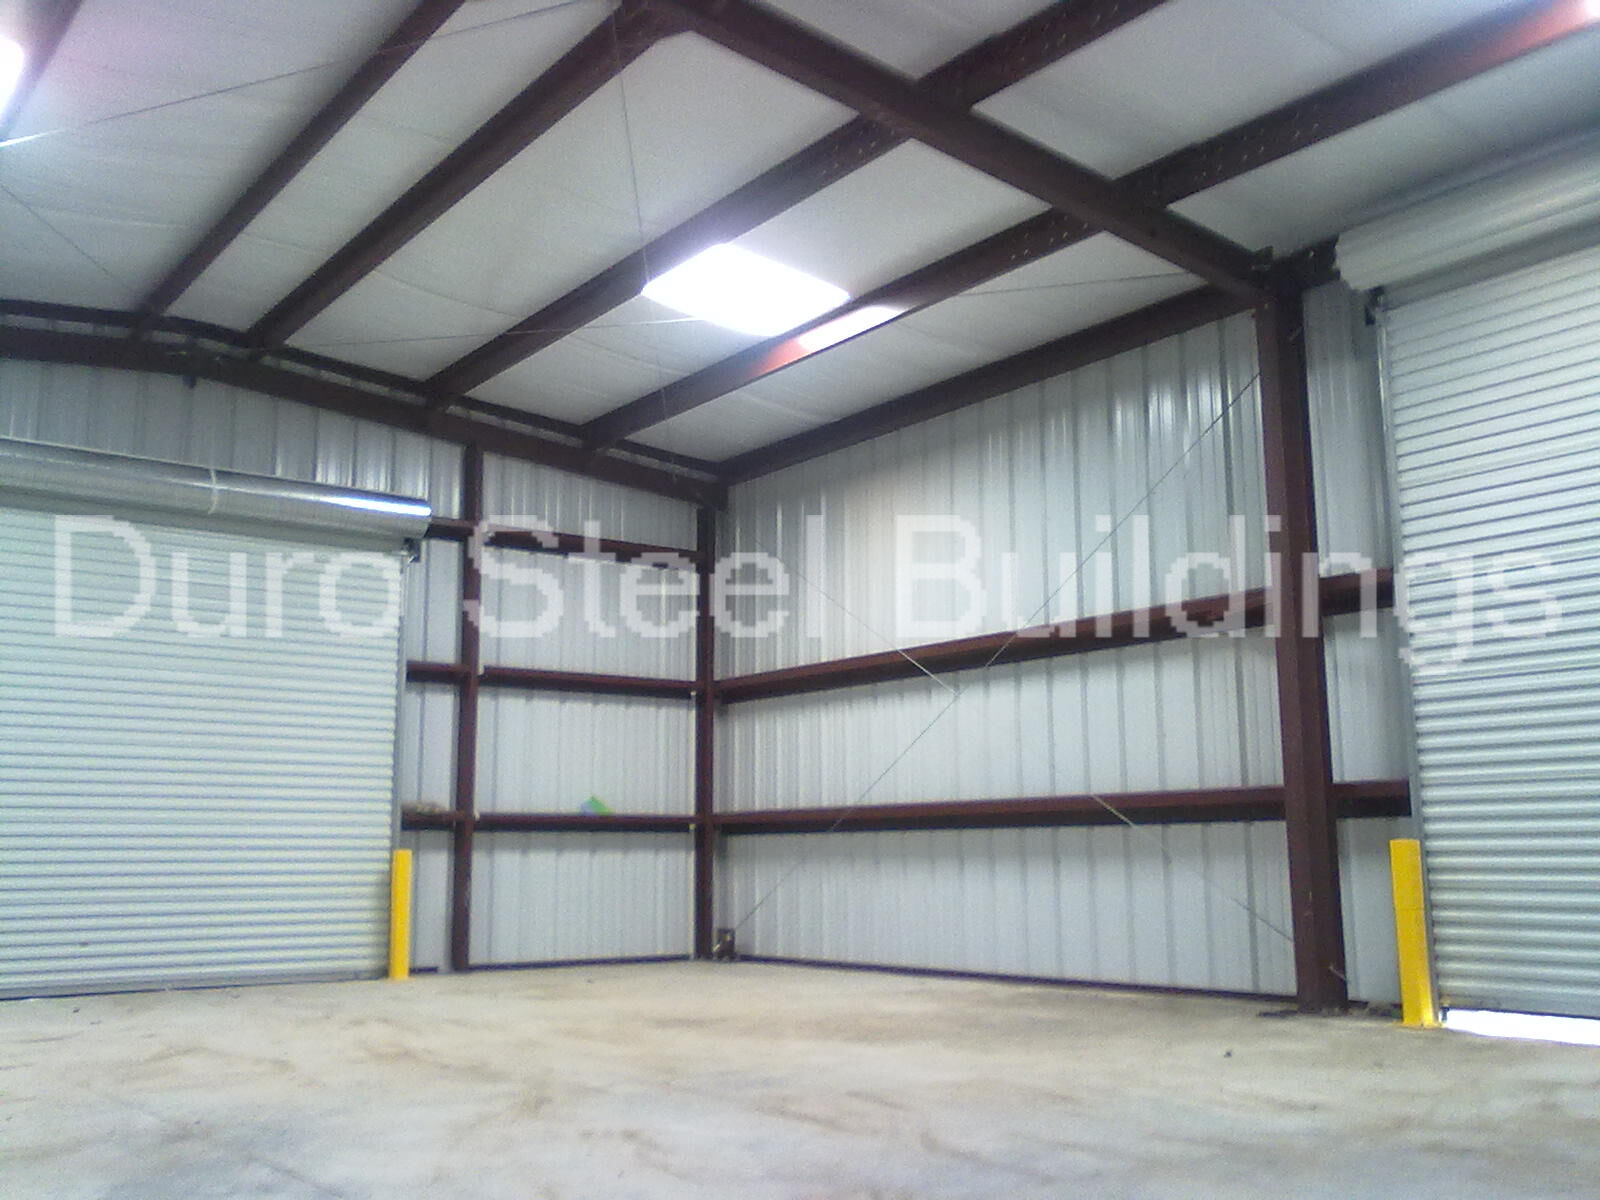 Durobeam steel 30x30x16 metal building kits residential for Residential garage kits